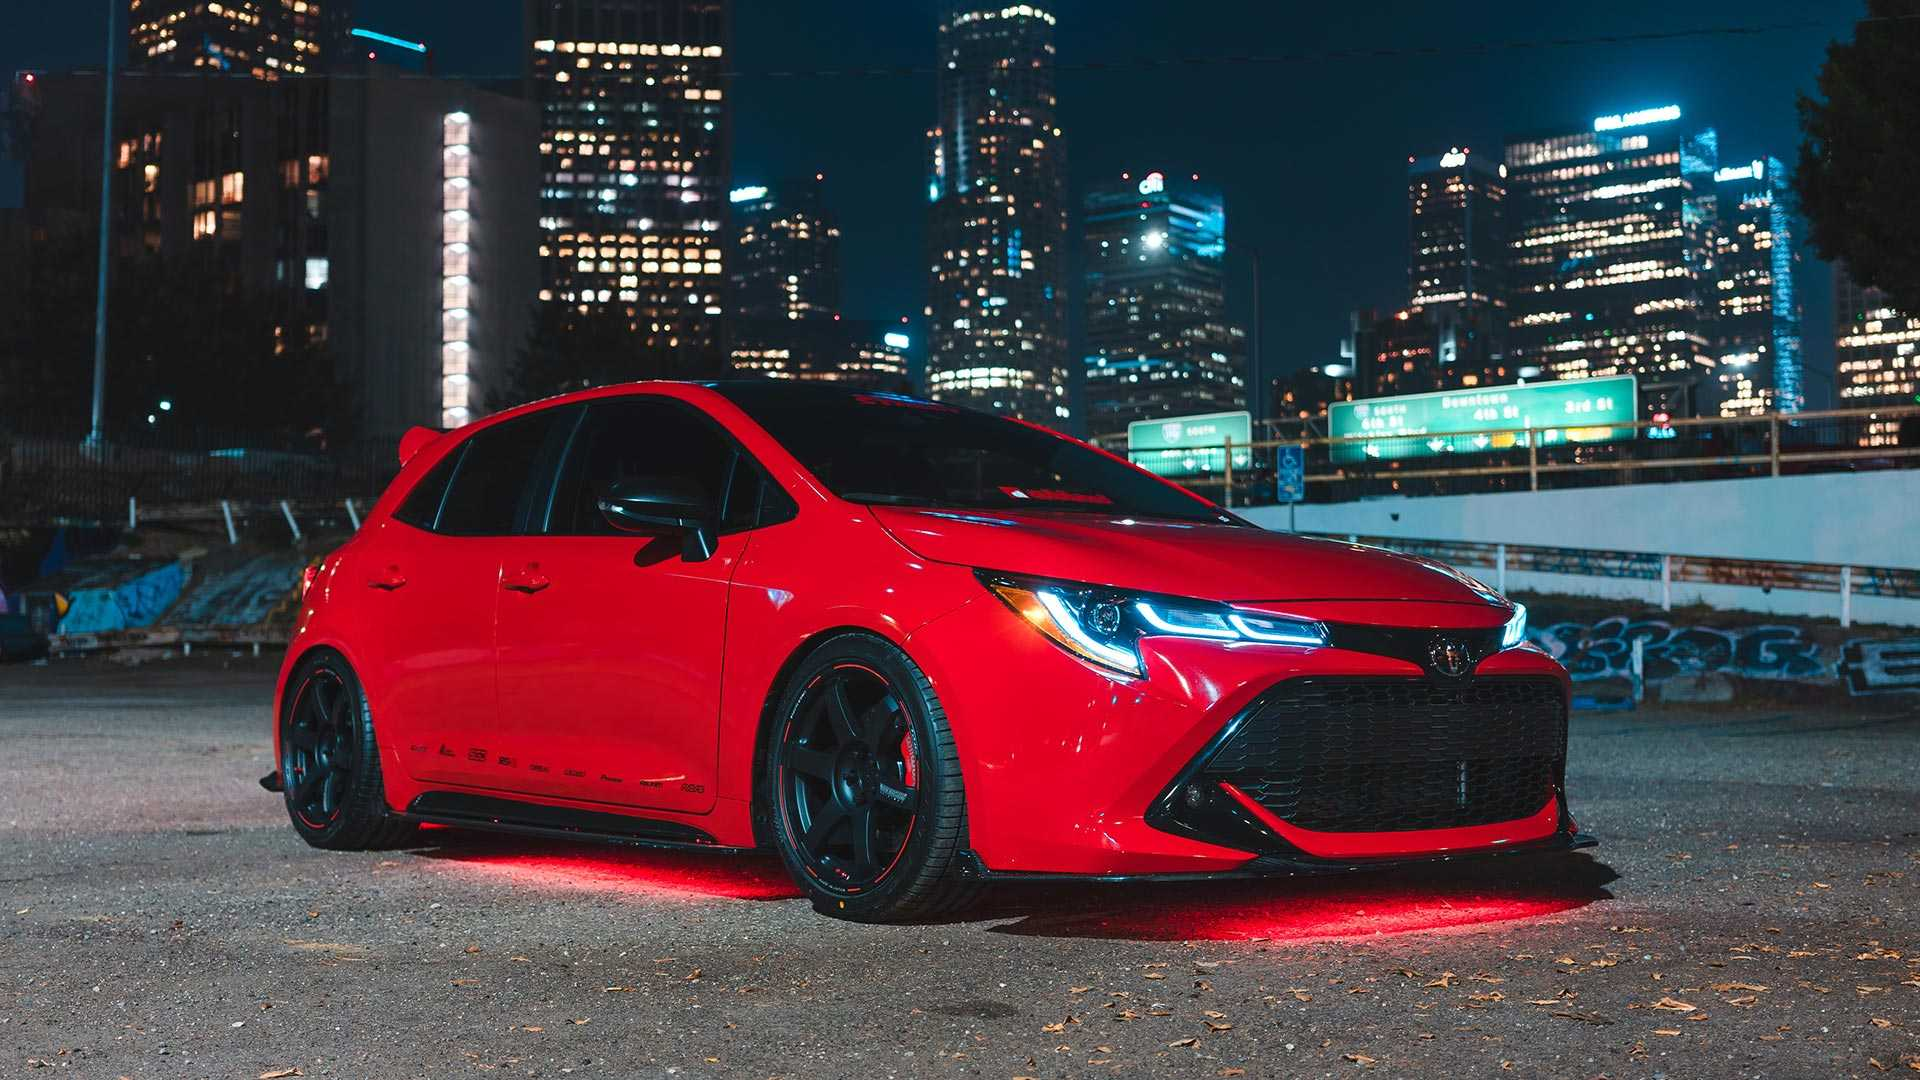 2019 Toyota Corolla/Hatchback  New York  No More iM! - Page 21